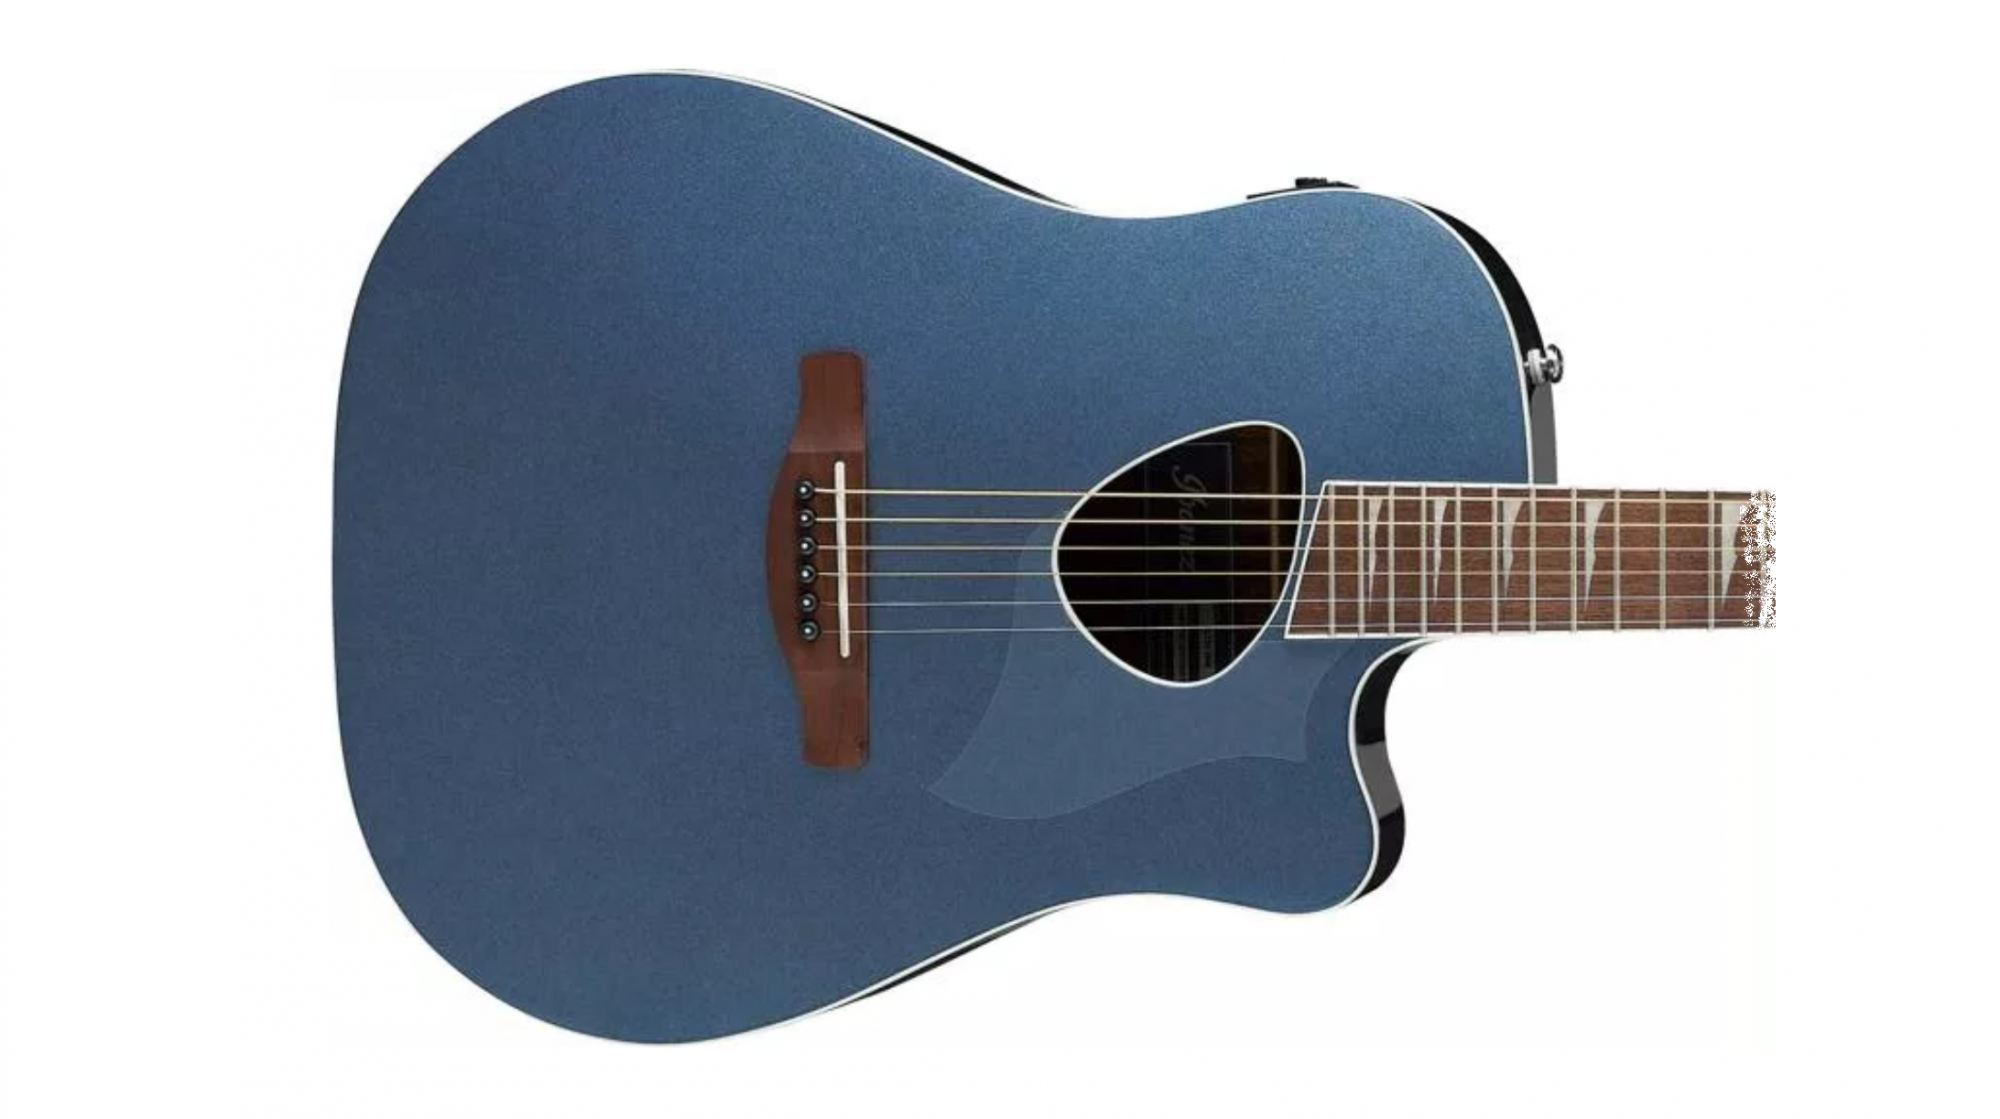 Ibanez Altstar ALT30 Acoustic Electric Guitar, Indigo Blue Metallic